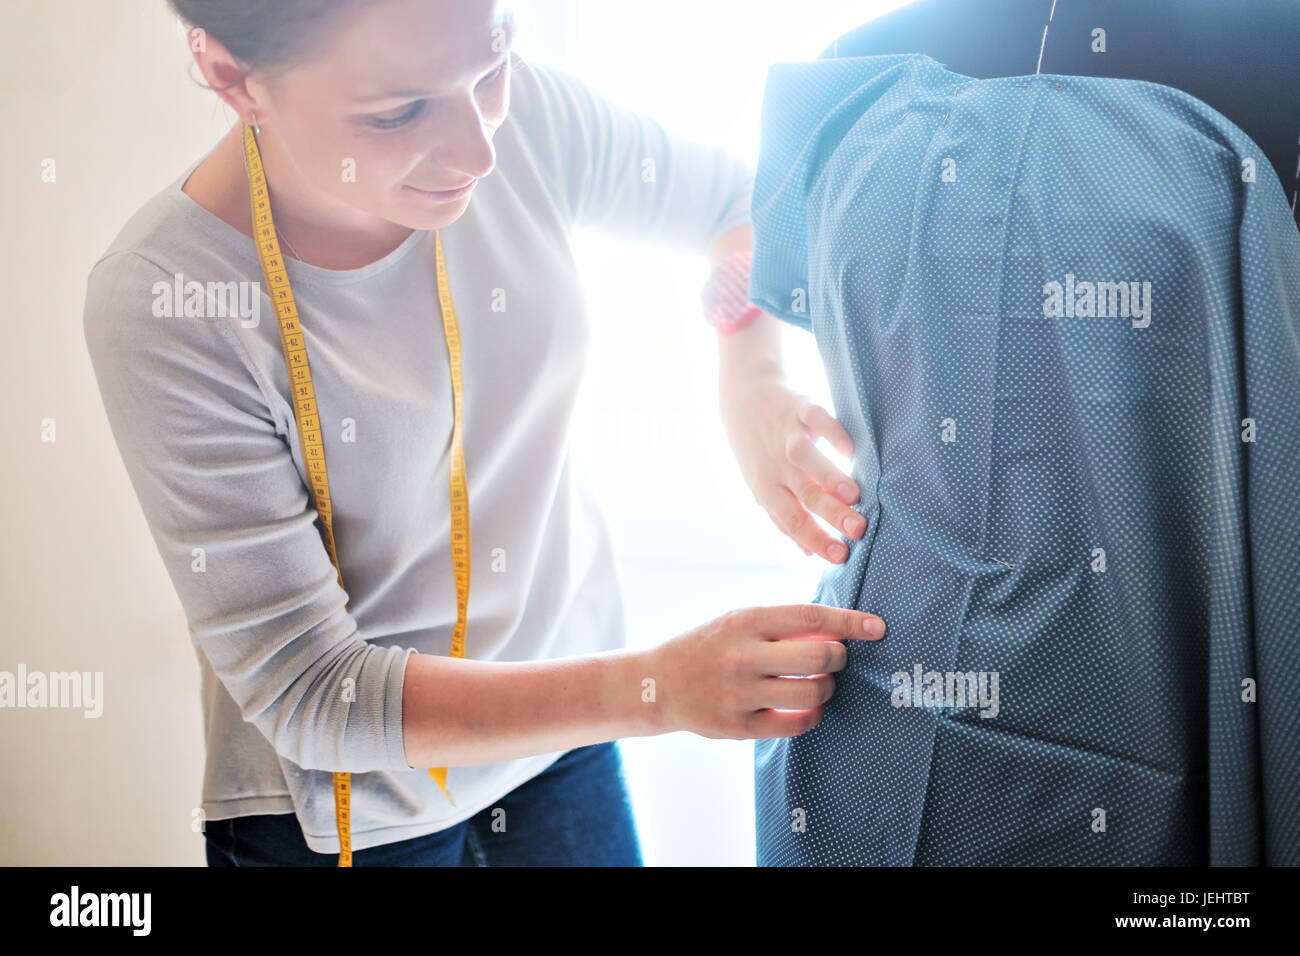 Young caucasian female fashion designer measuring a dress. - Stock Image